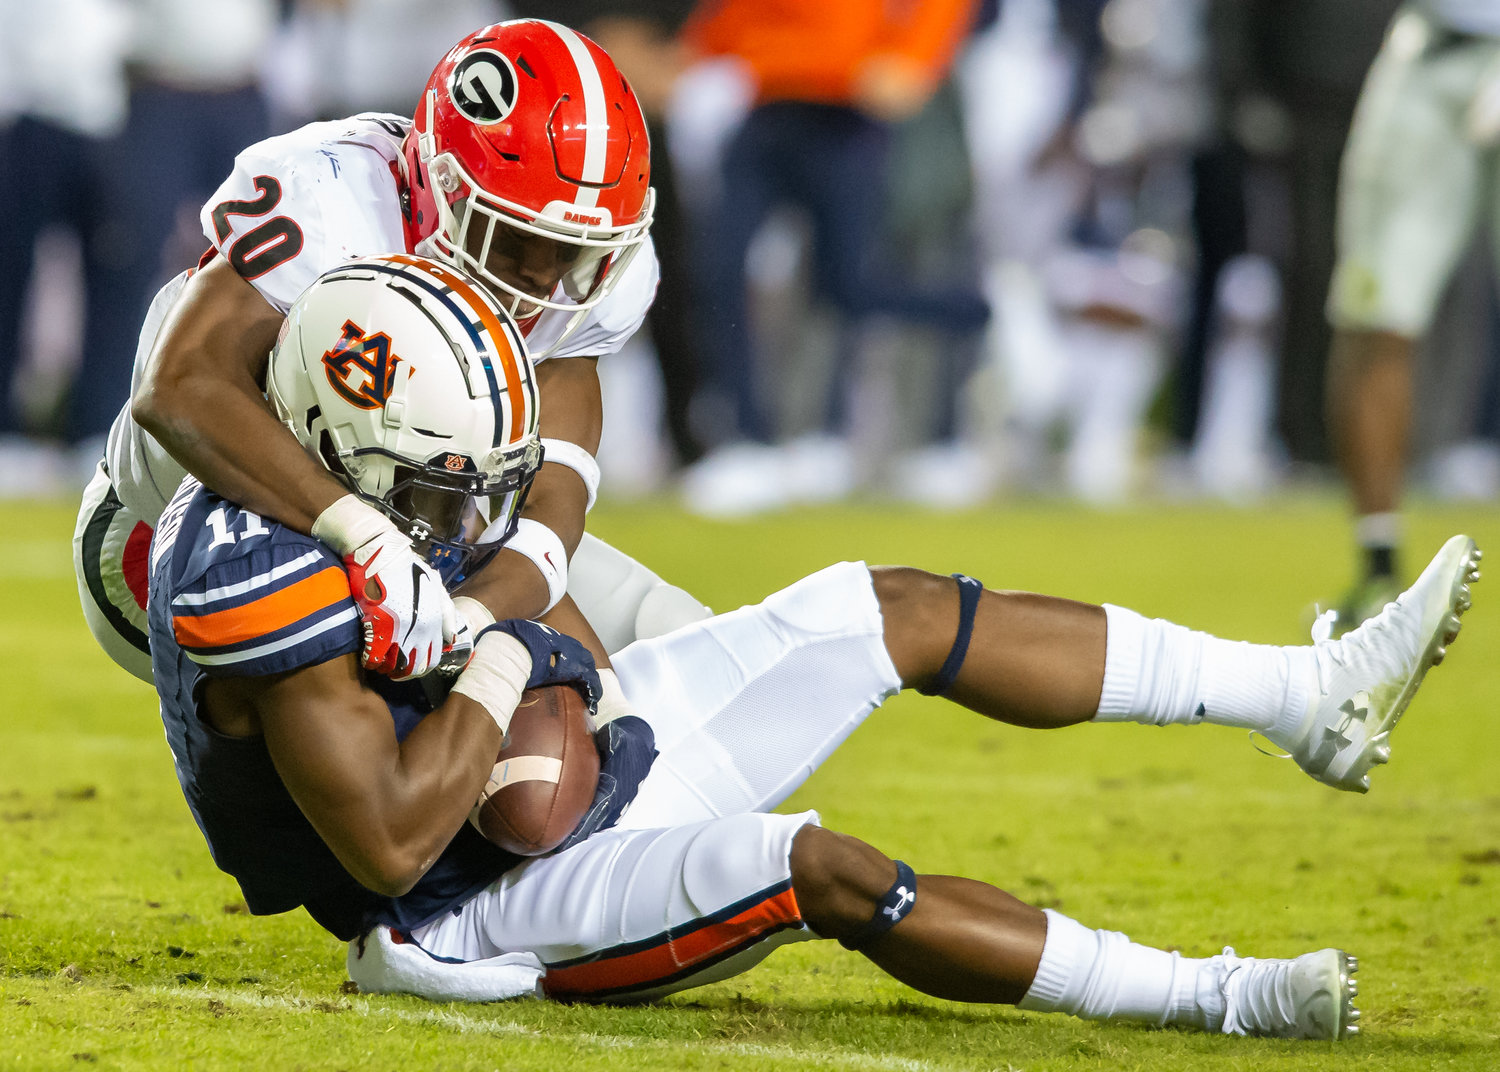 Georgia Bulldogs defensive back J.R. Reed (20) tackles Auburn Tigers wide receiver Shedrick Jackson (11) during the second half of Saturday's game, at Jordan-Hare Stadium in Auburn,, AL. Daily Mountain Eagle -  Jeff Johnsey